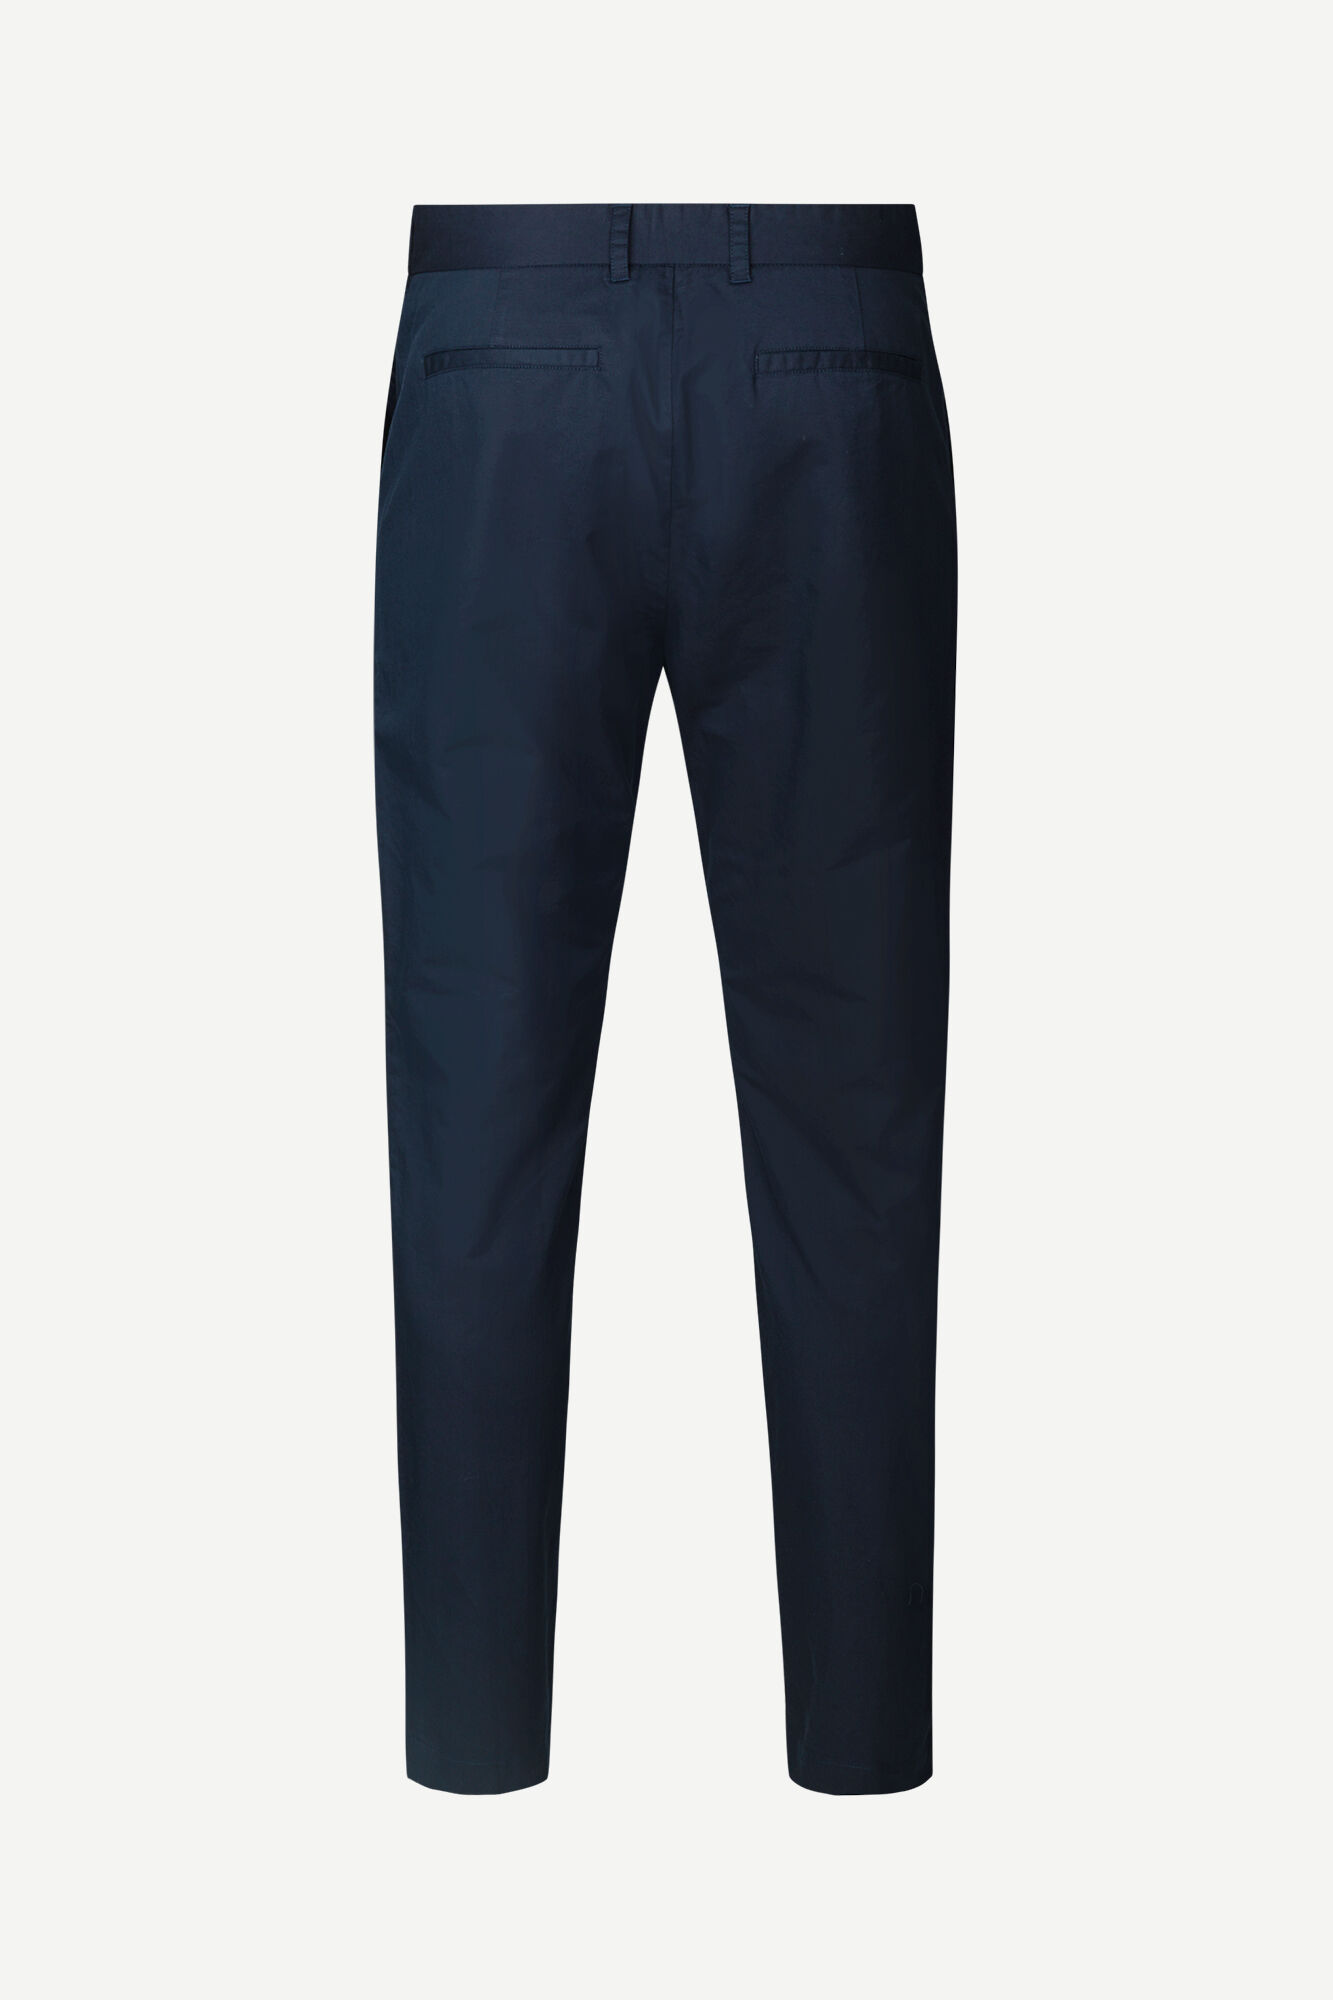 Andy x trousers 11494, SKY CAPTAIN